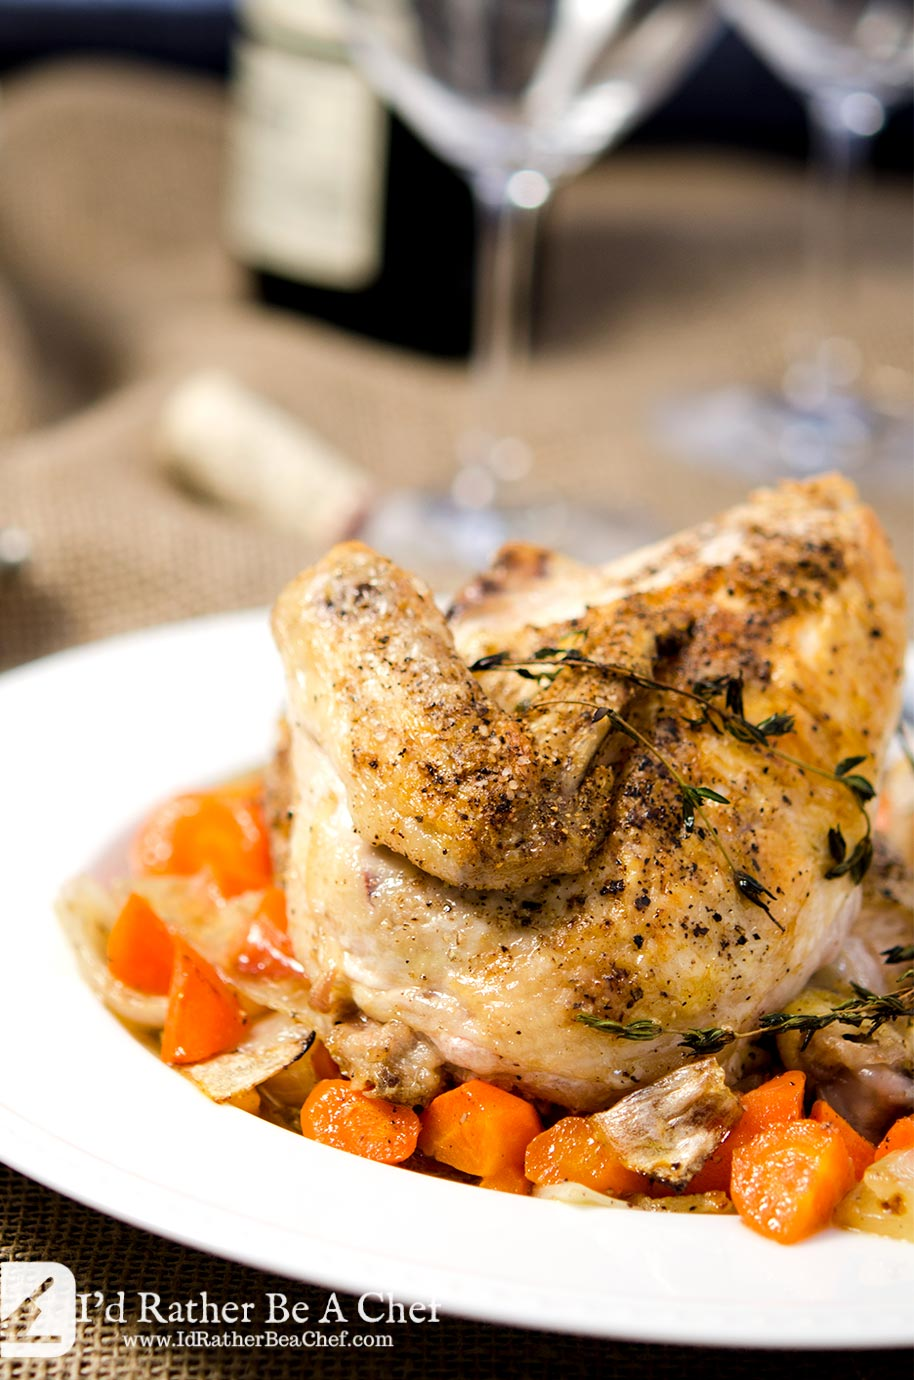 Look at the crispy skin on this roasted chicken and vegetables recipe. Just delicious with the fresh thyme, carrots and onions. Outstandingly simple and super tasty.